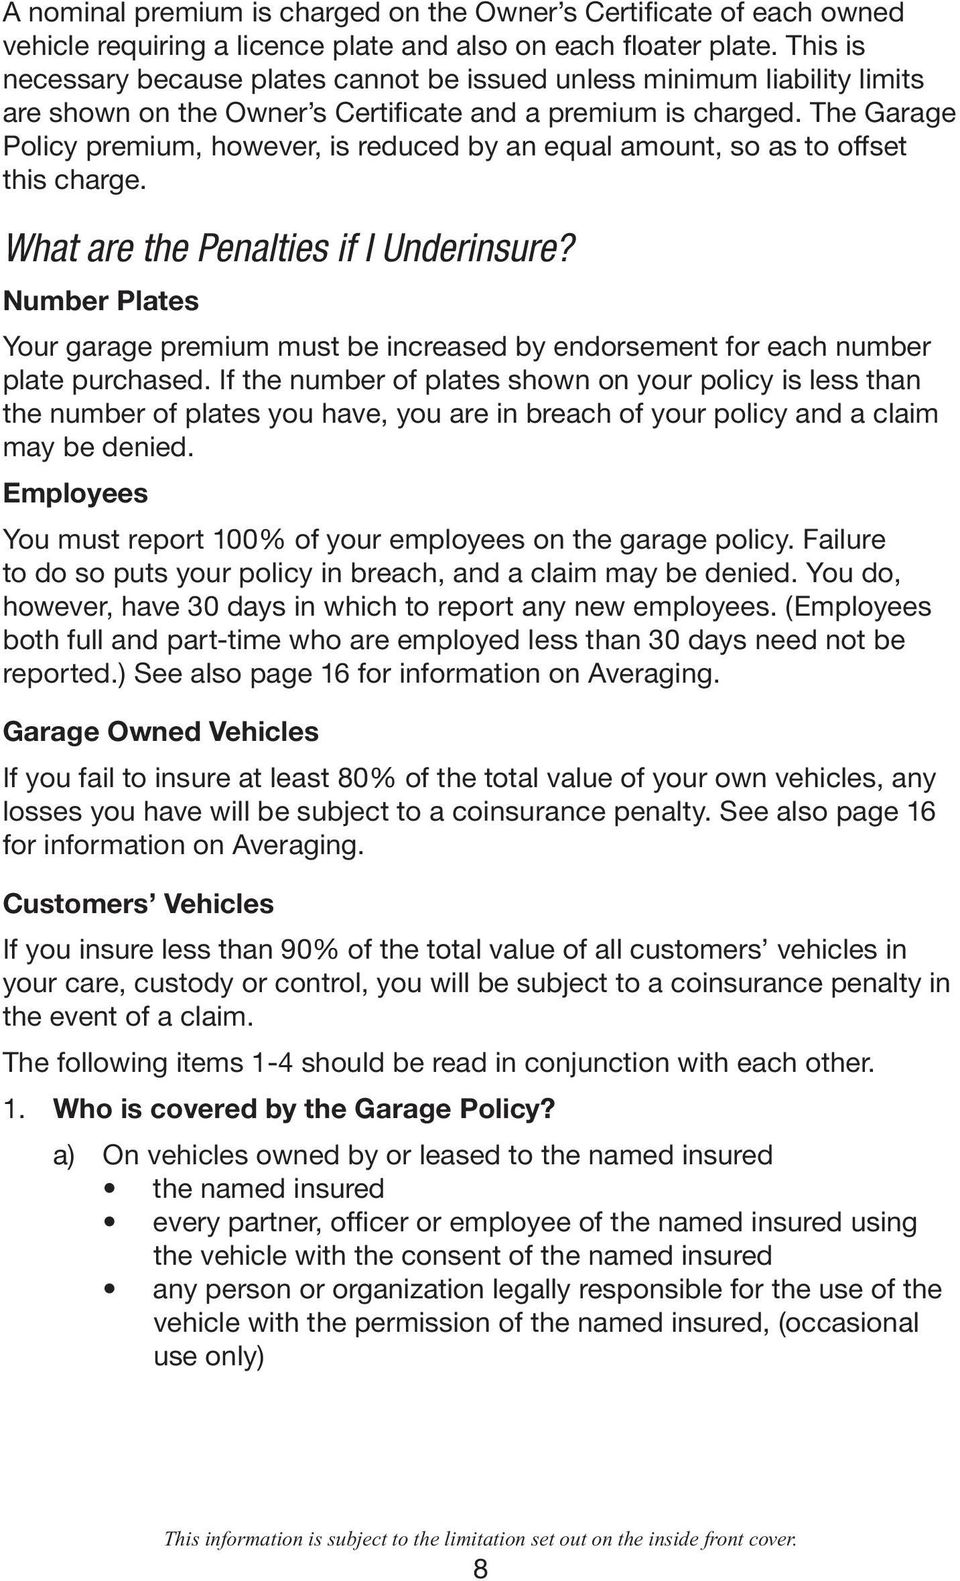 The Garage Policy premium, however, is reduced by an equal amount, so as to offset this charge. What are the Penalties if I Underinsure?